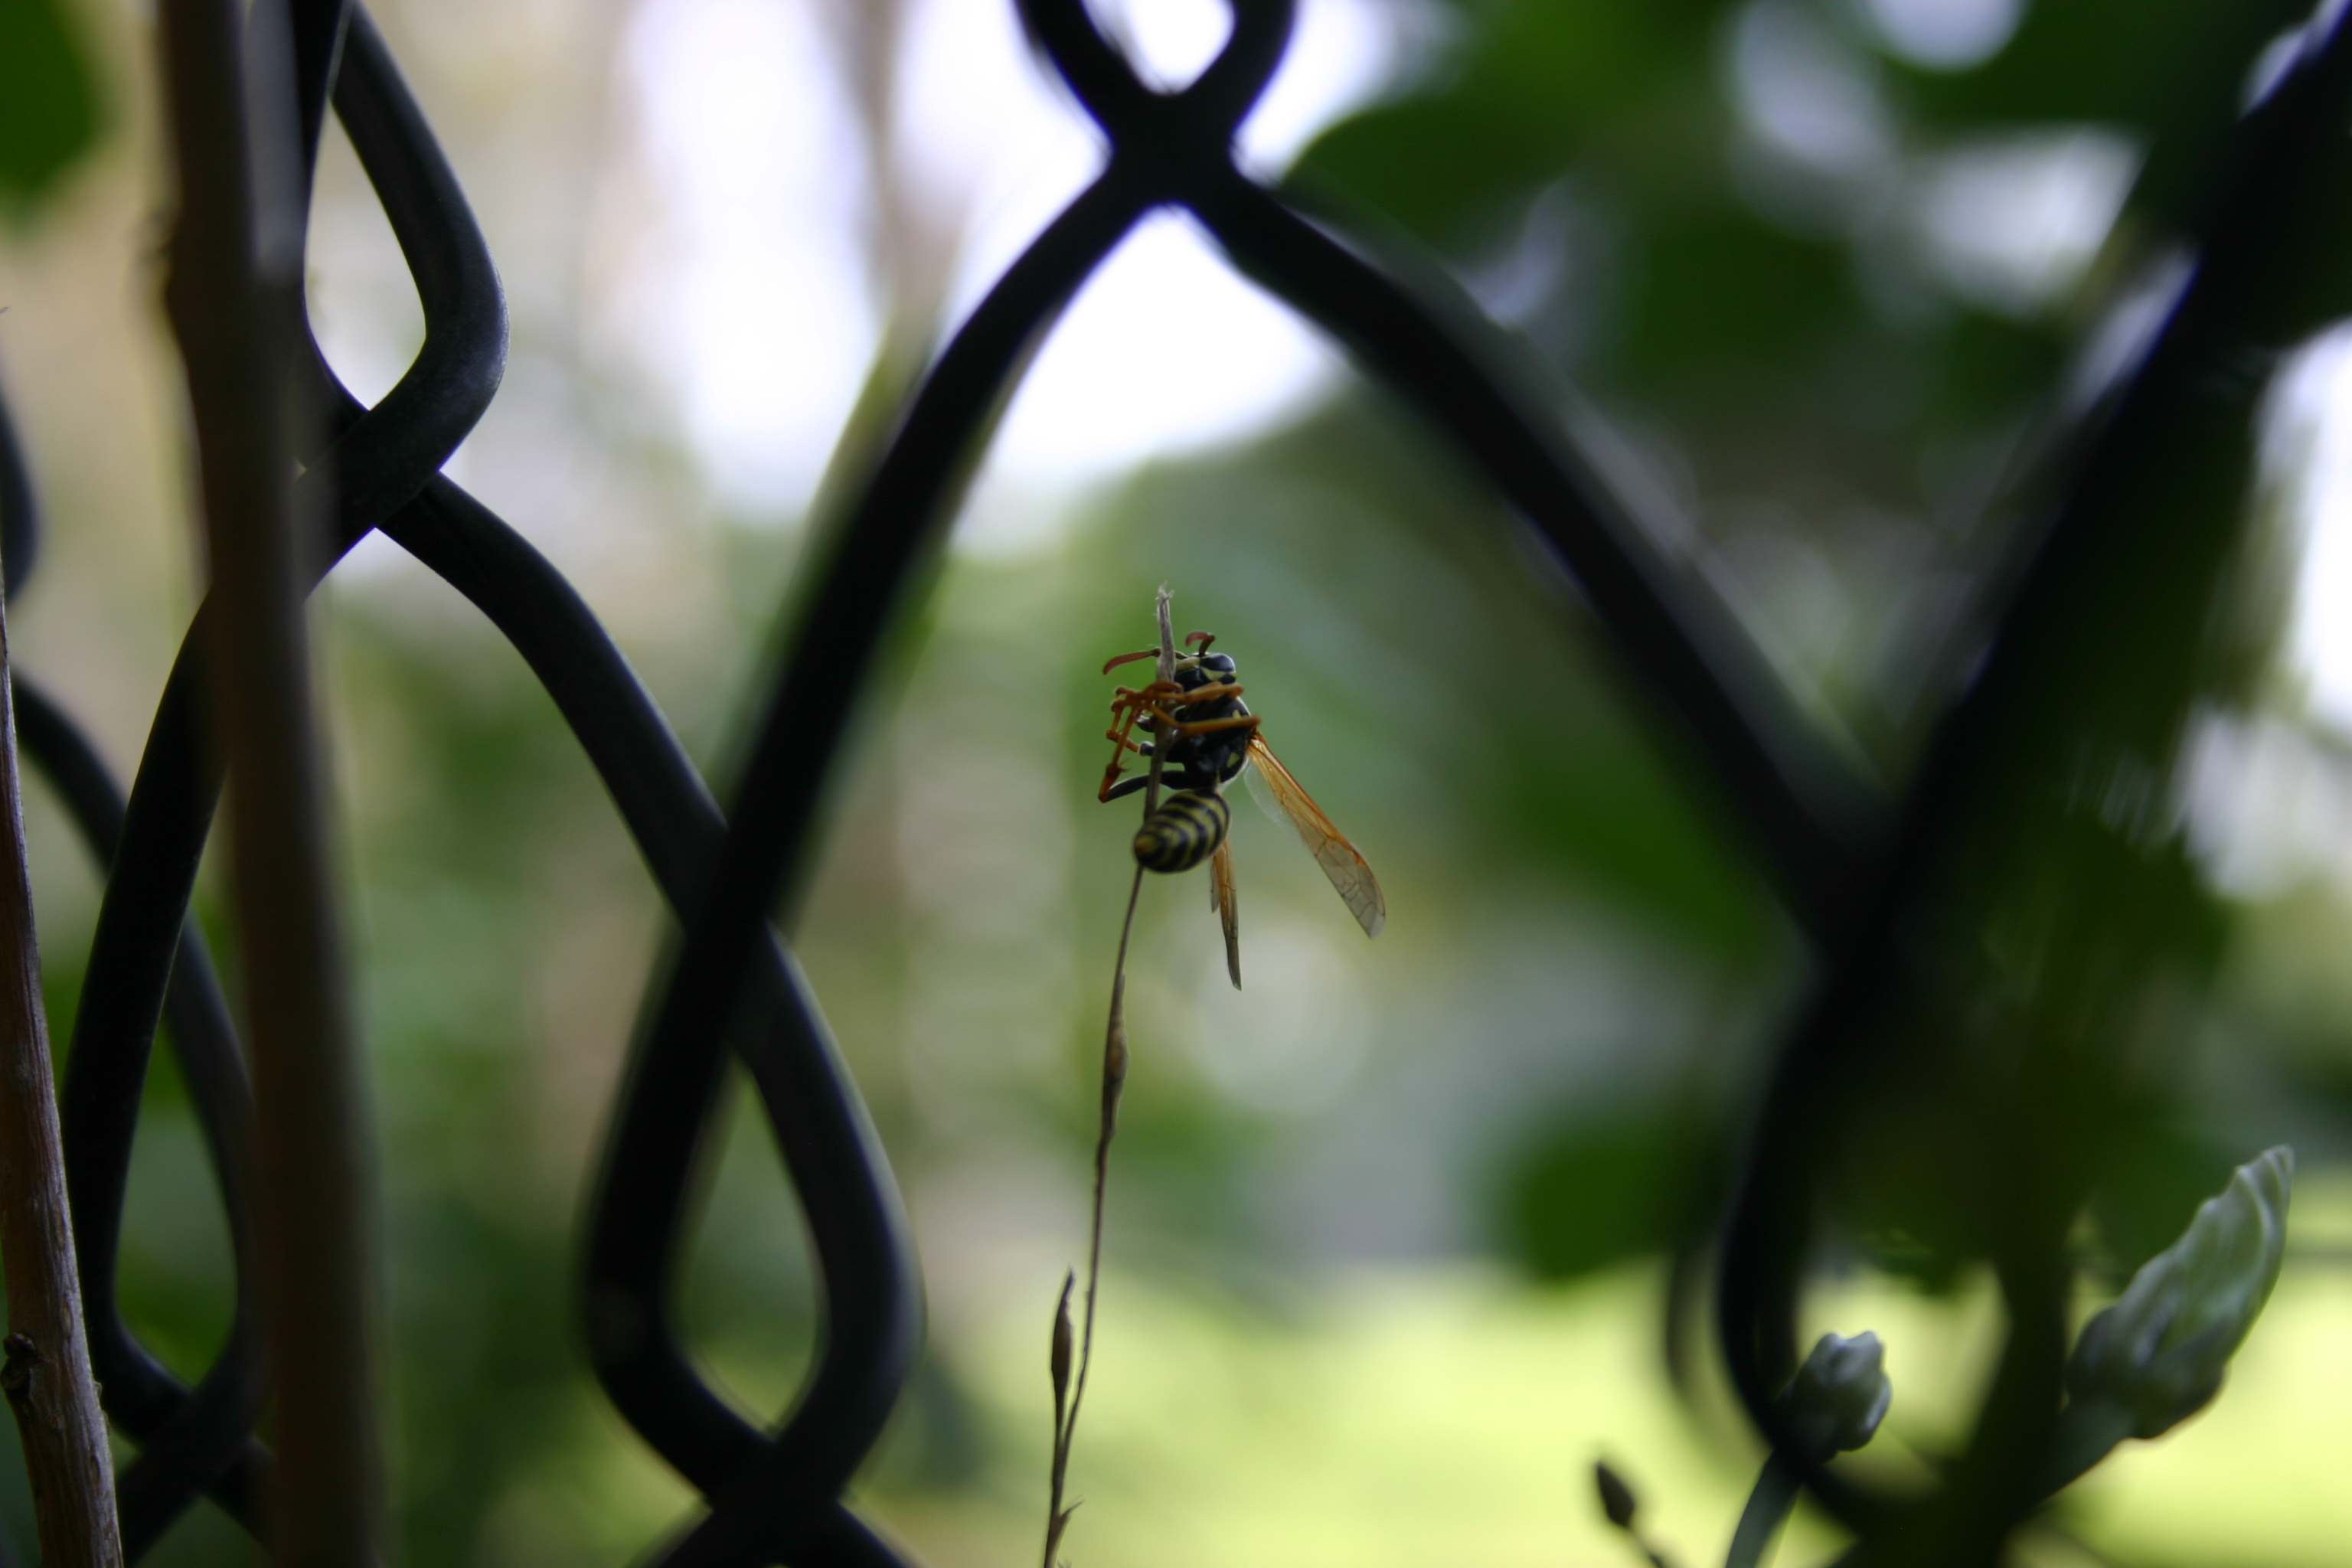 A wasp grasping a thin weed.  (Taken through a chain-link fence.)